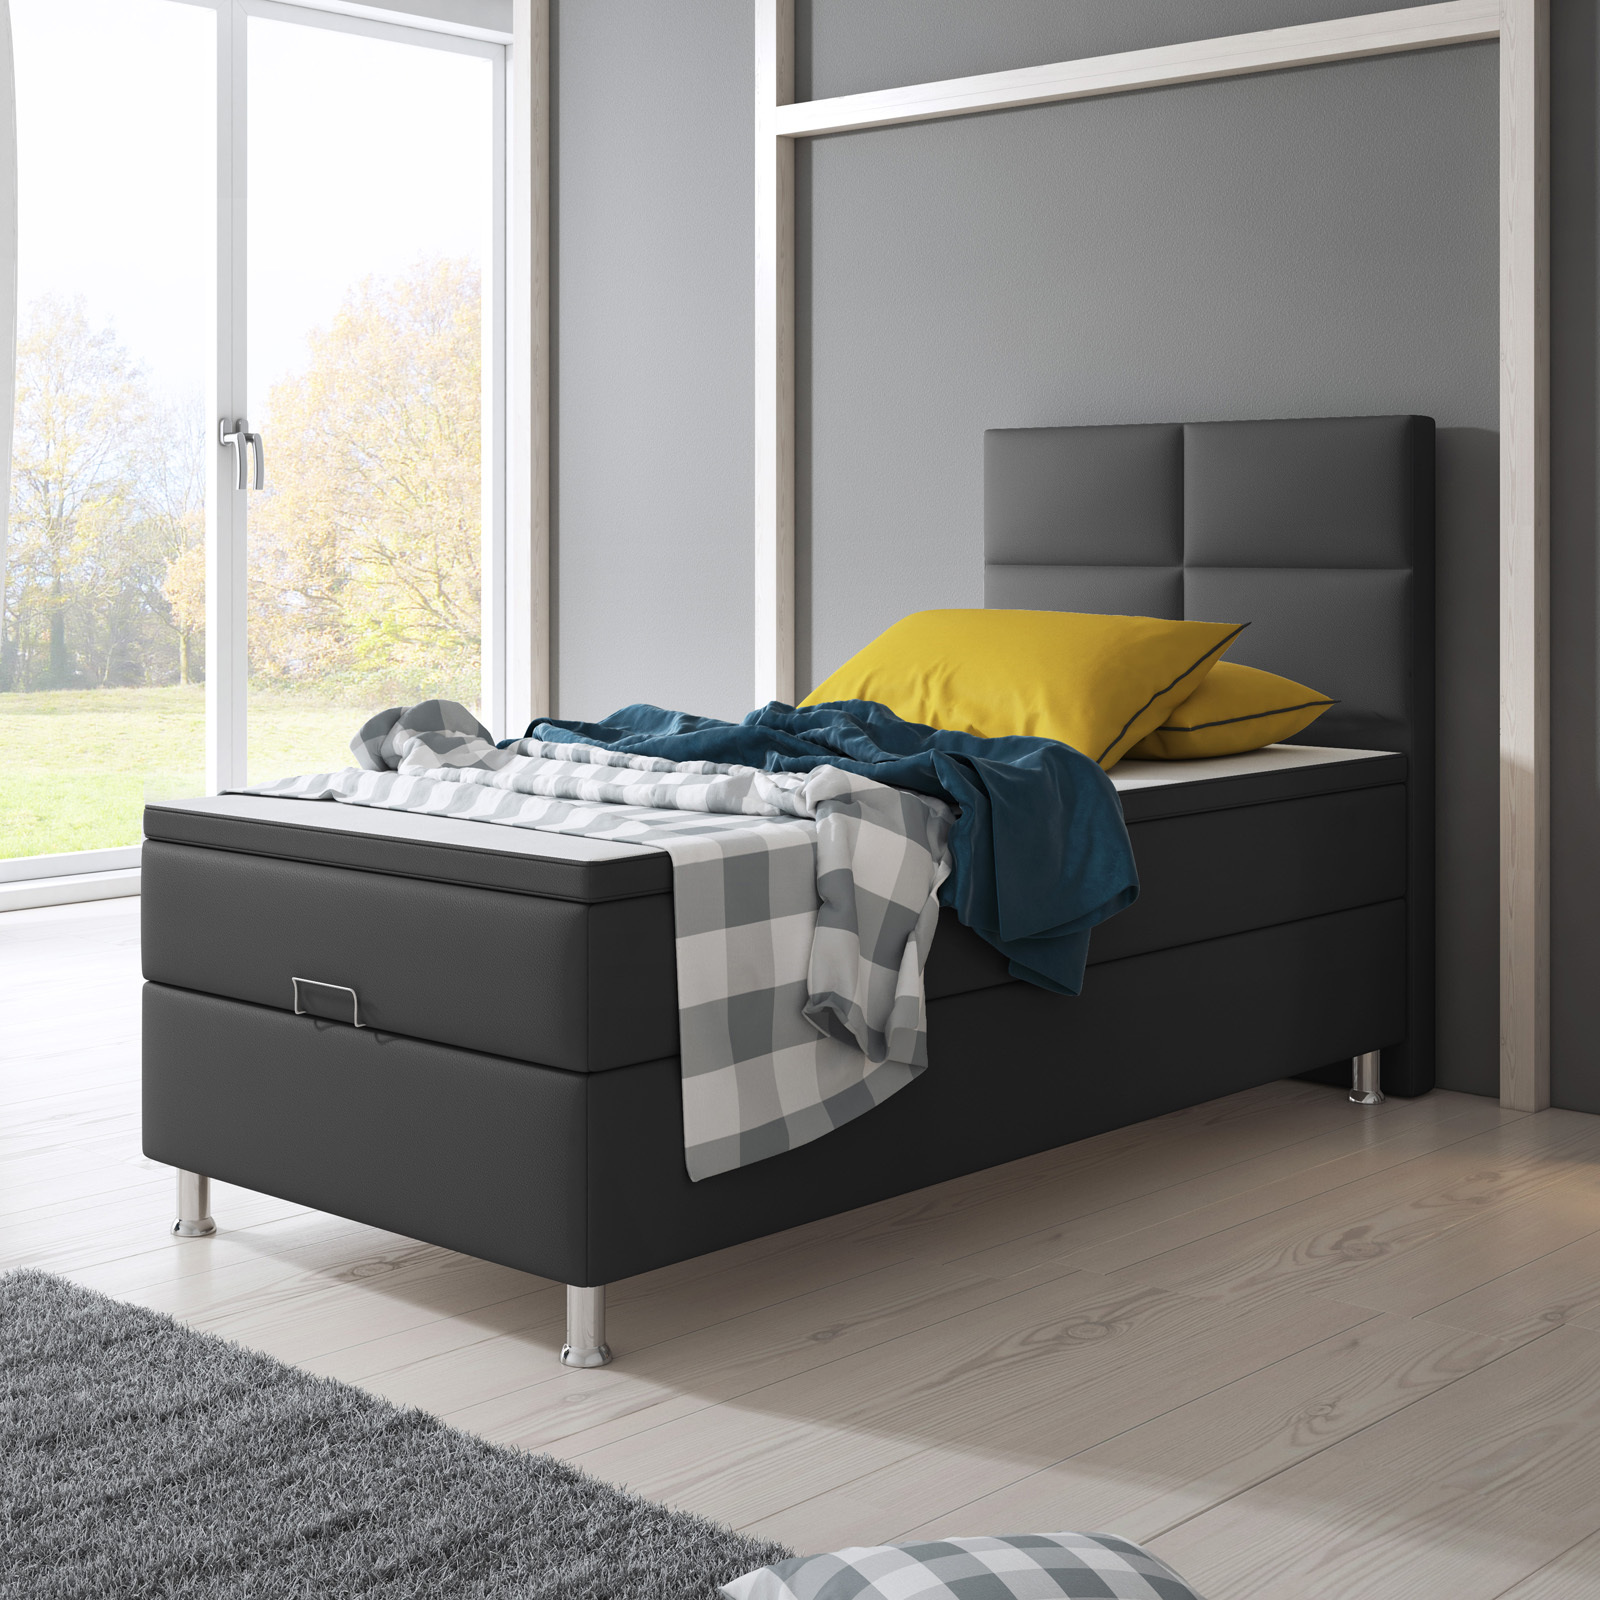 Boxspringbett Design Miami Anthrazit Mit Bettkasten H3 90x200 Cm